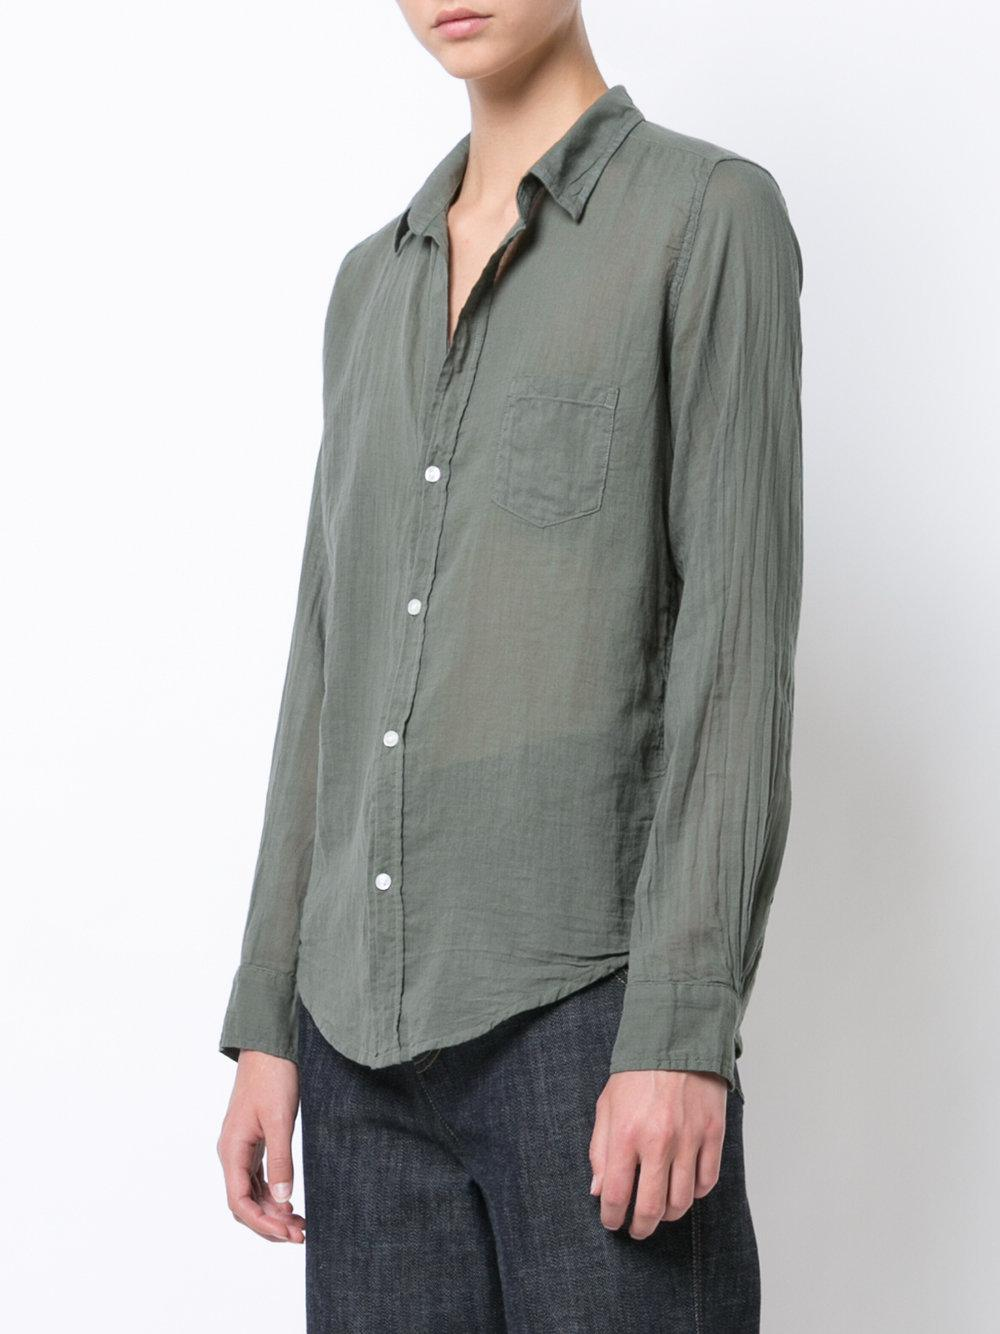 Lyst Frank Eileen Barry Fitted Shirt In Green